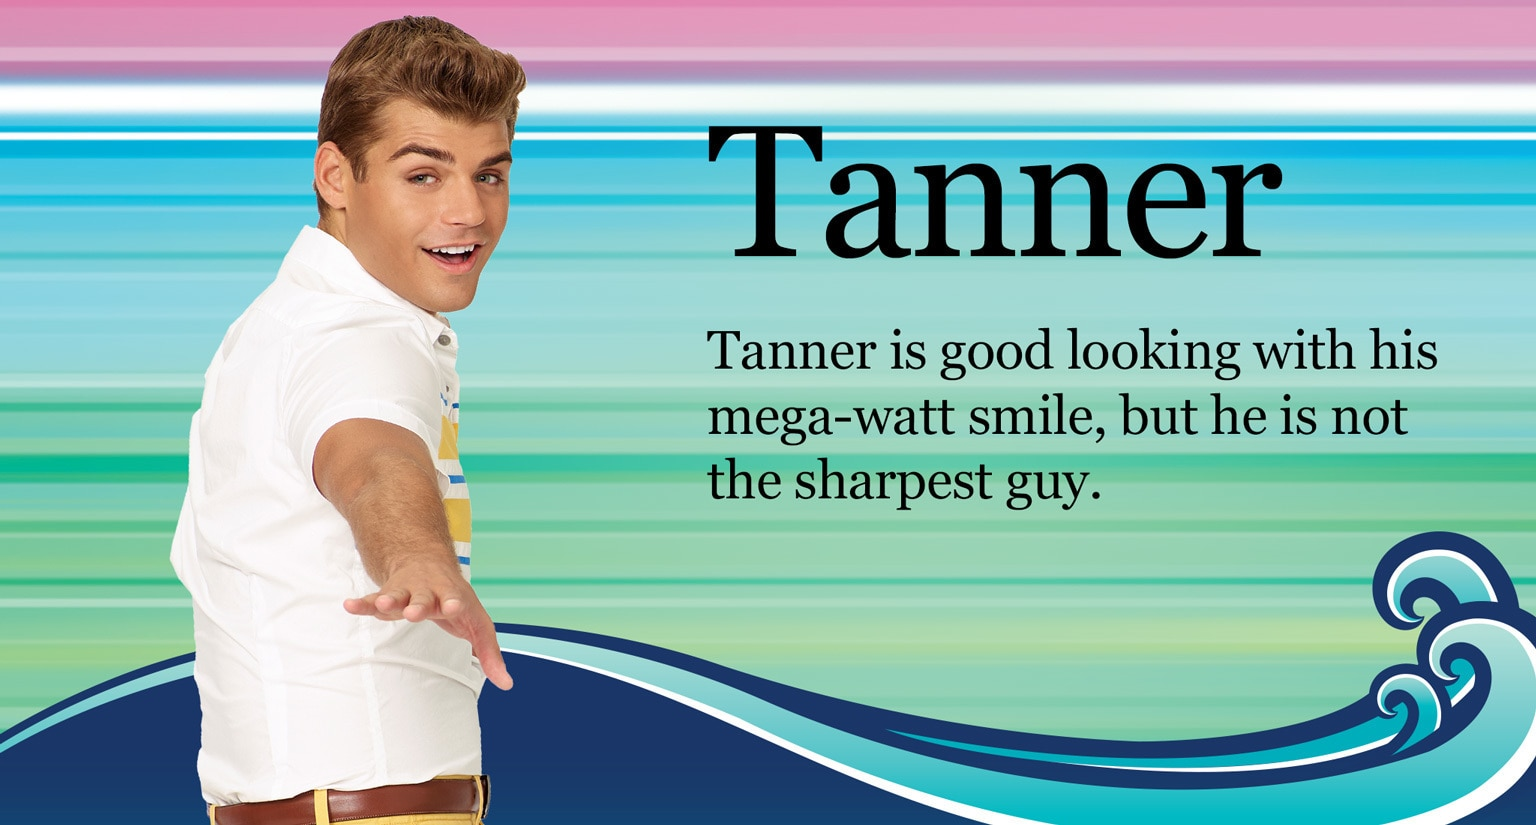 Teen Beach 2 - Show Home - Tanner Character Hero - MY